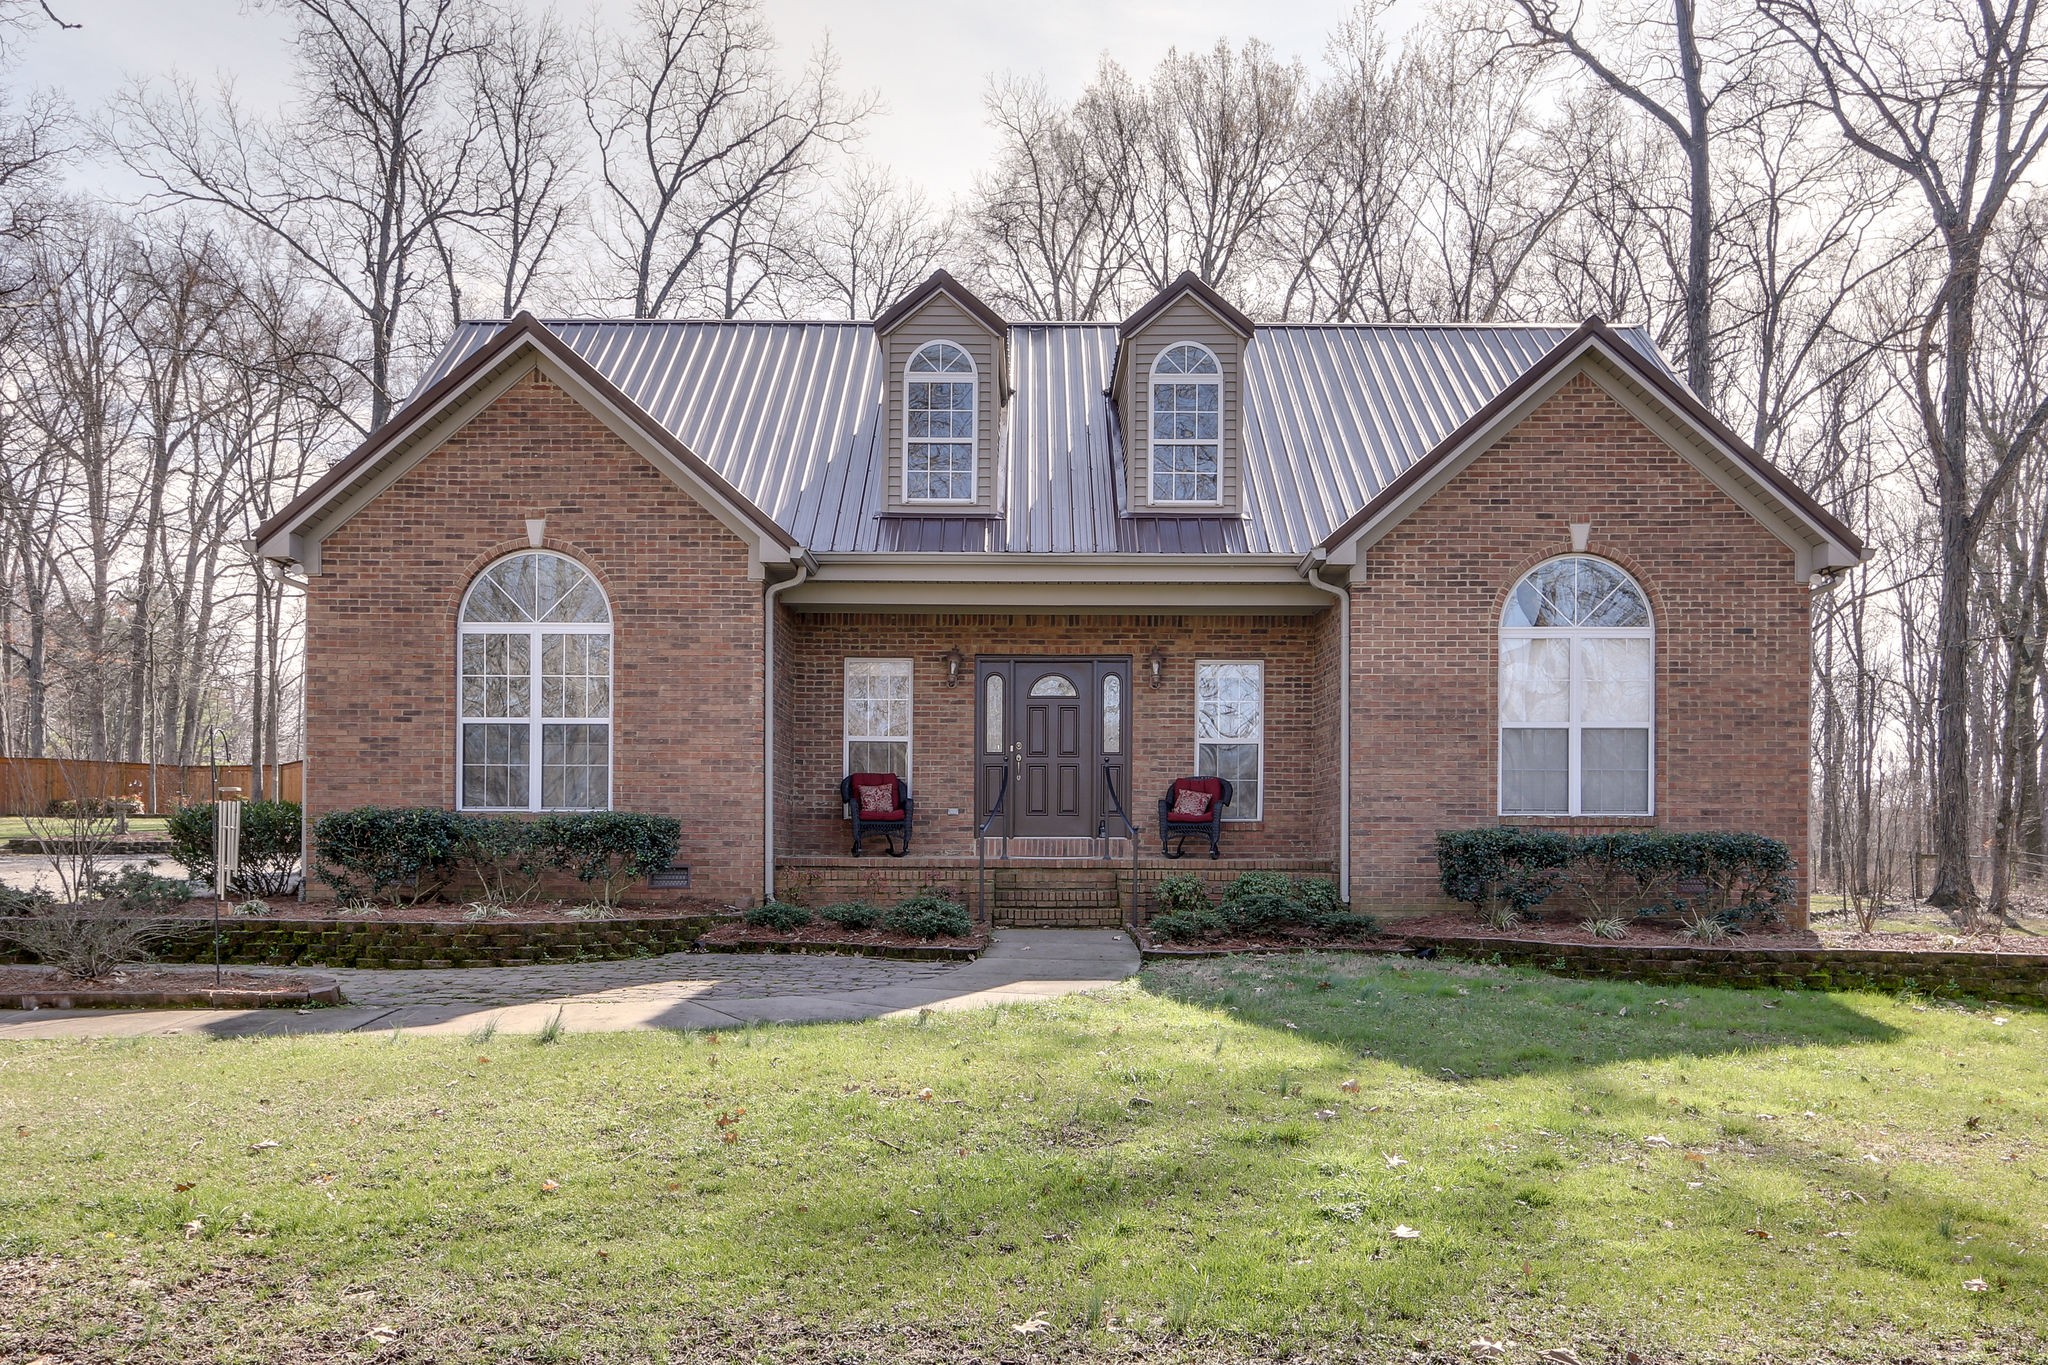 627 Vaughans Gap Rd, Spring Hill, Tennessee